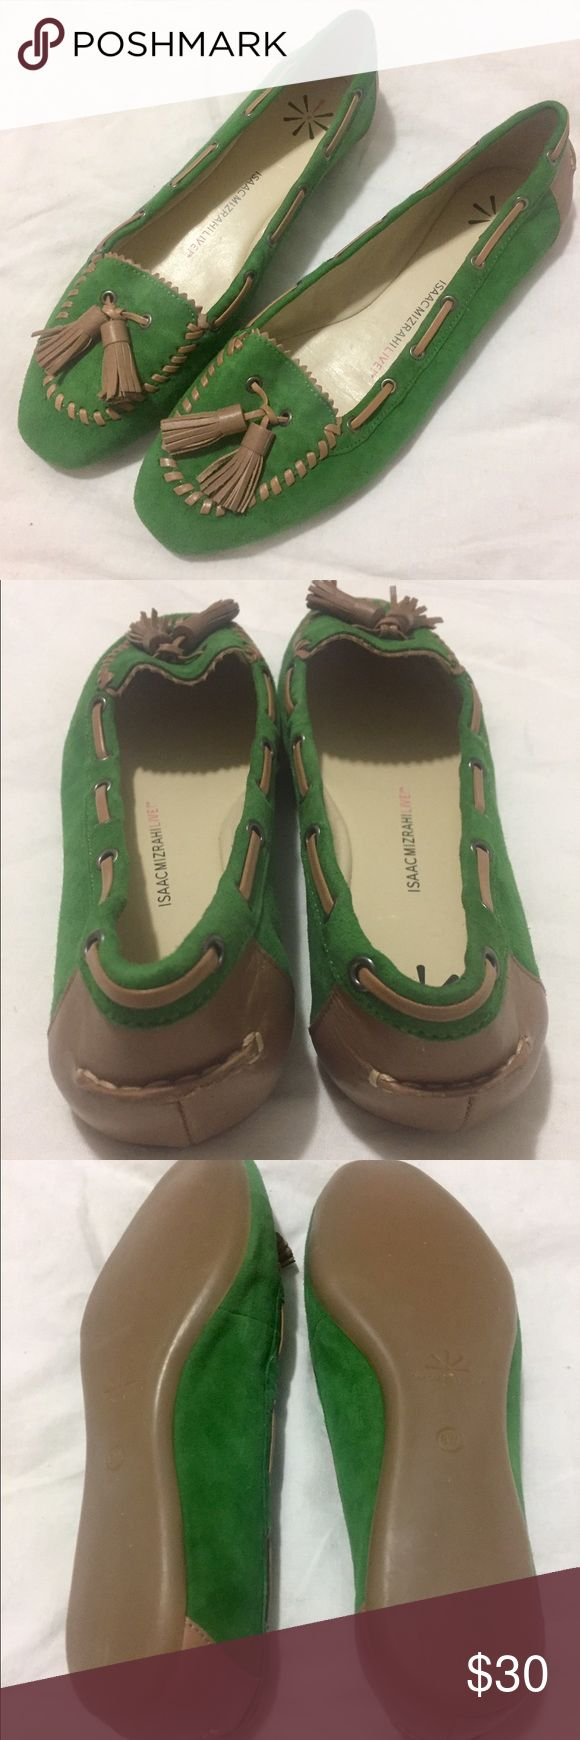 Isaac Mizrahi Live | Green Suede Loafers | Size: 8 Isaac Mizrahi Live | Green Suede Loafers | Size: 8W | Great Condition | NWOT | No Damage or Wear | True to Size | Pet/Smoke Free Home | Leather Insole, Rubber Bottom Isaac Mizrahi Shoes Flats & Loafers